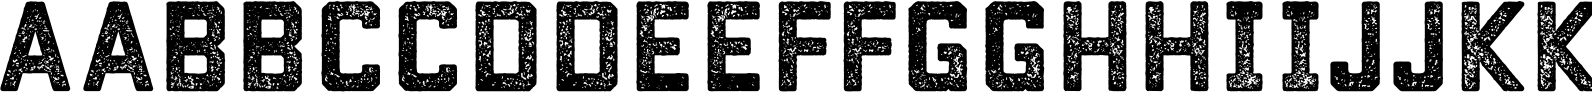 Conifer Rough Font